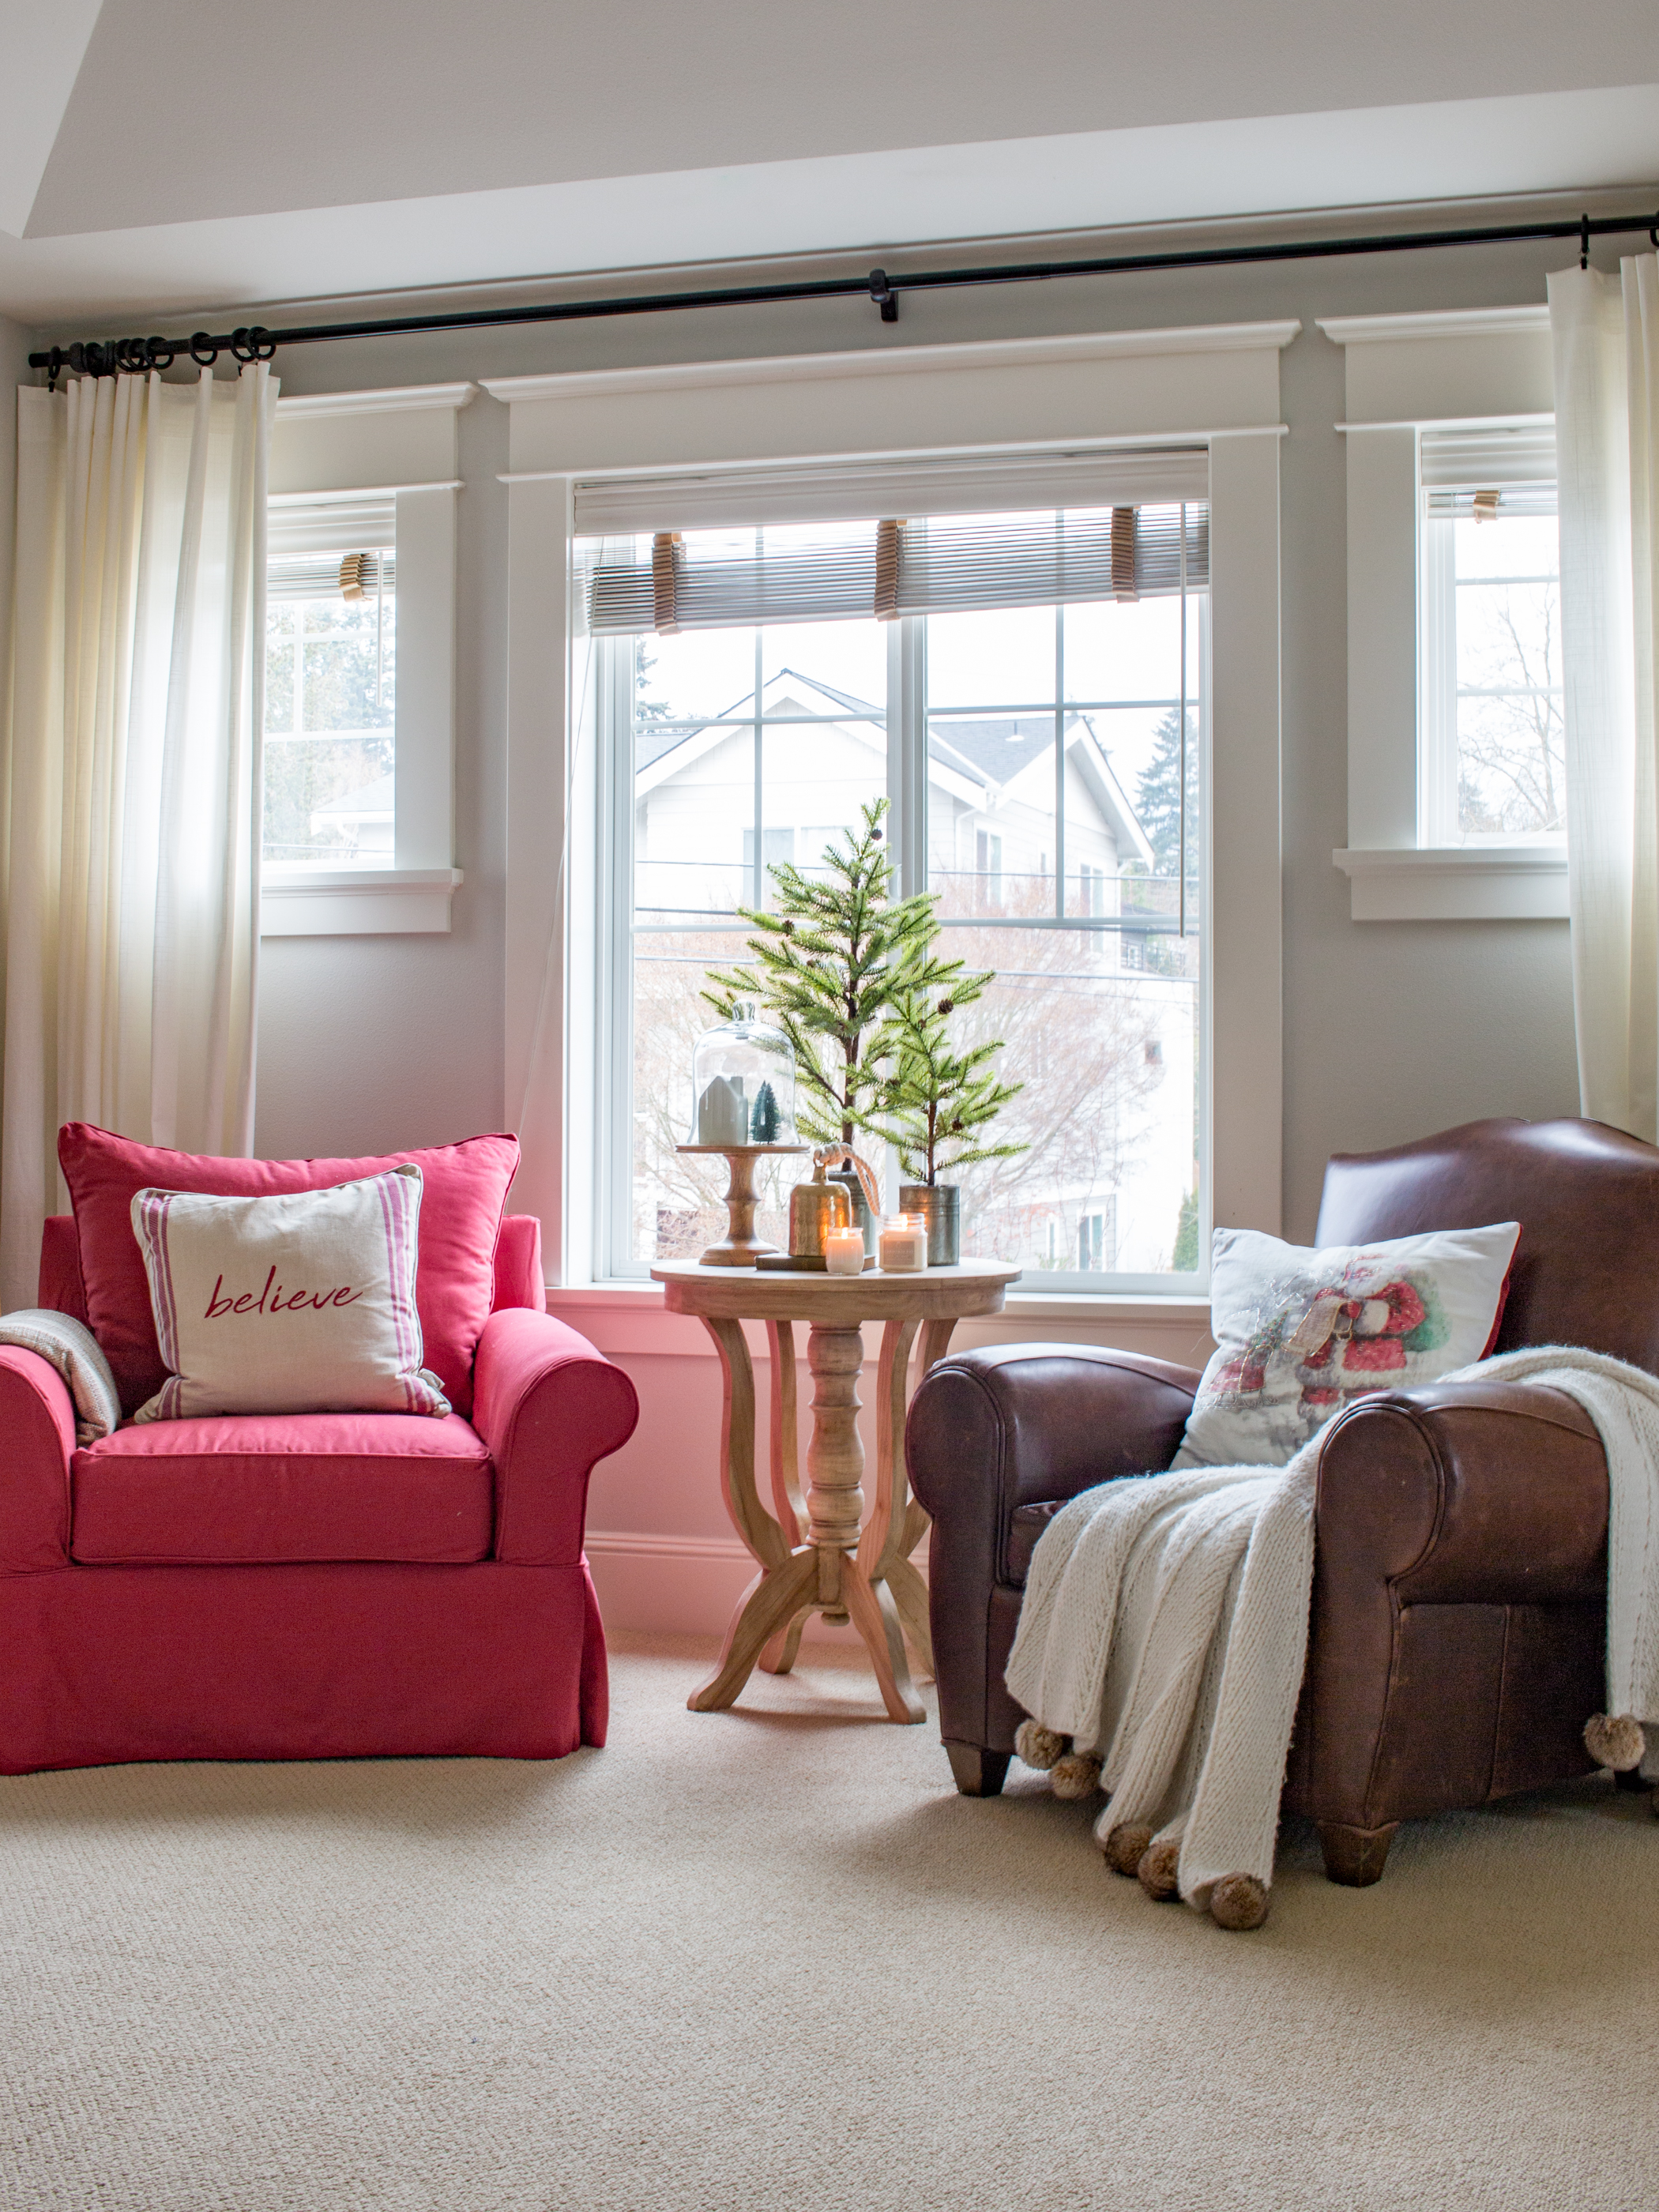 Master Bedroom Sitting Area With Red Chair Saw Nail And Paint